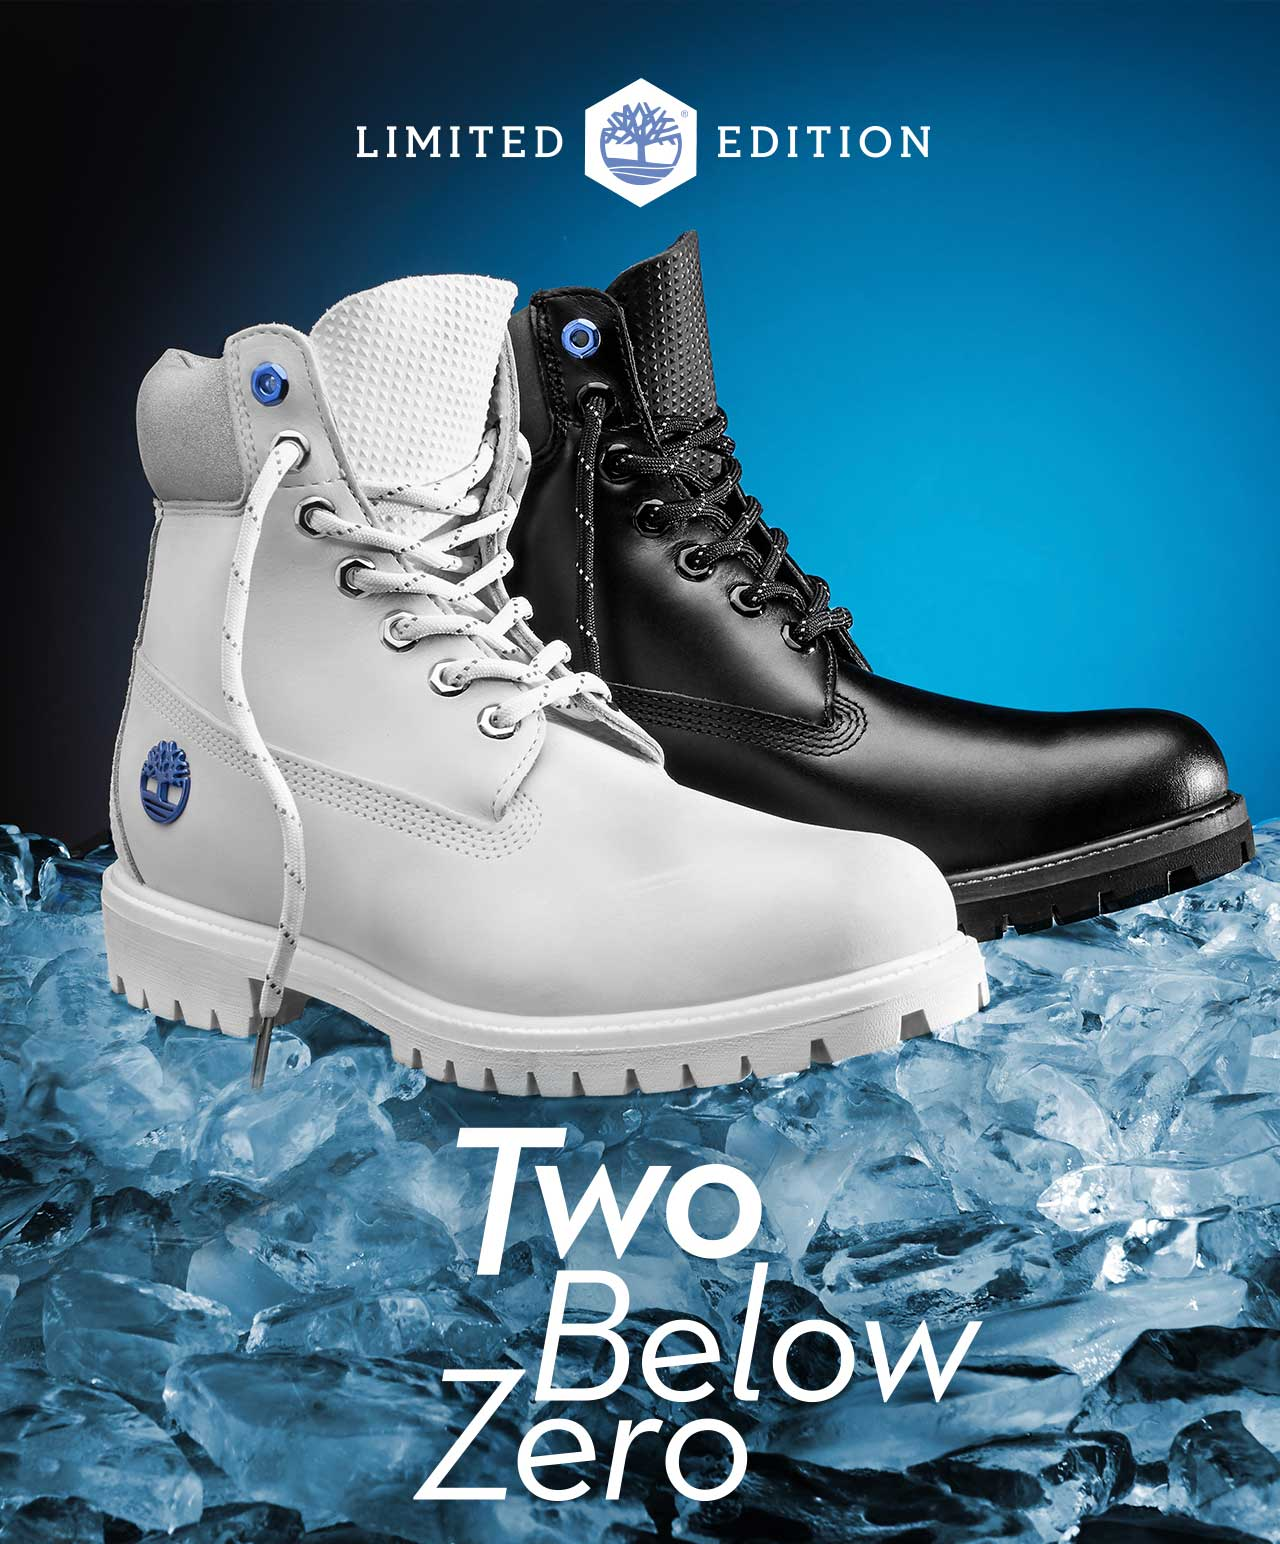 Limited Edition Two Below Zero